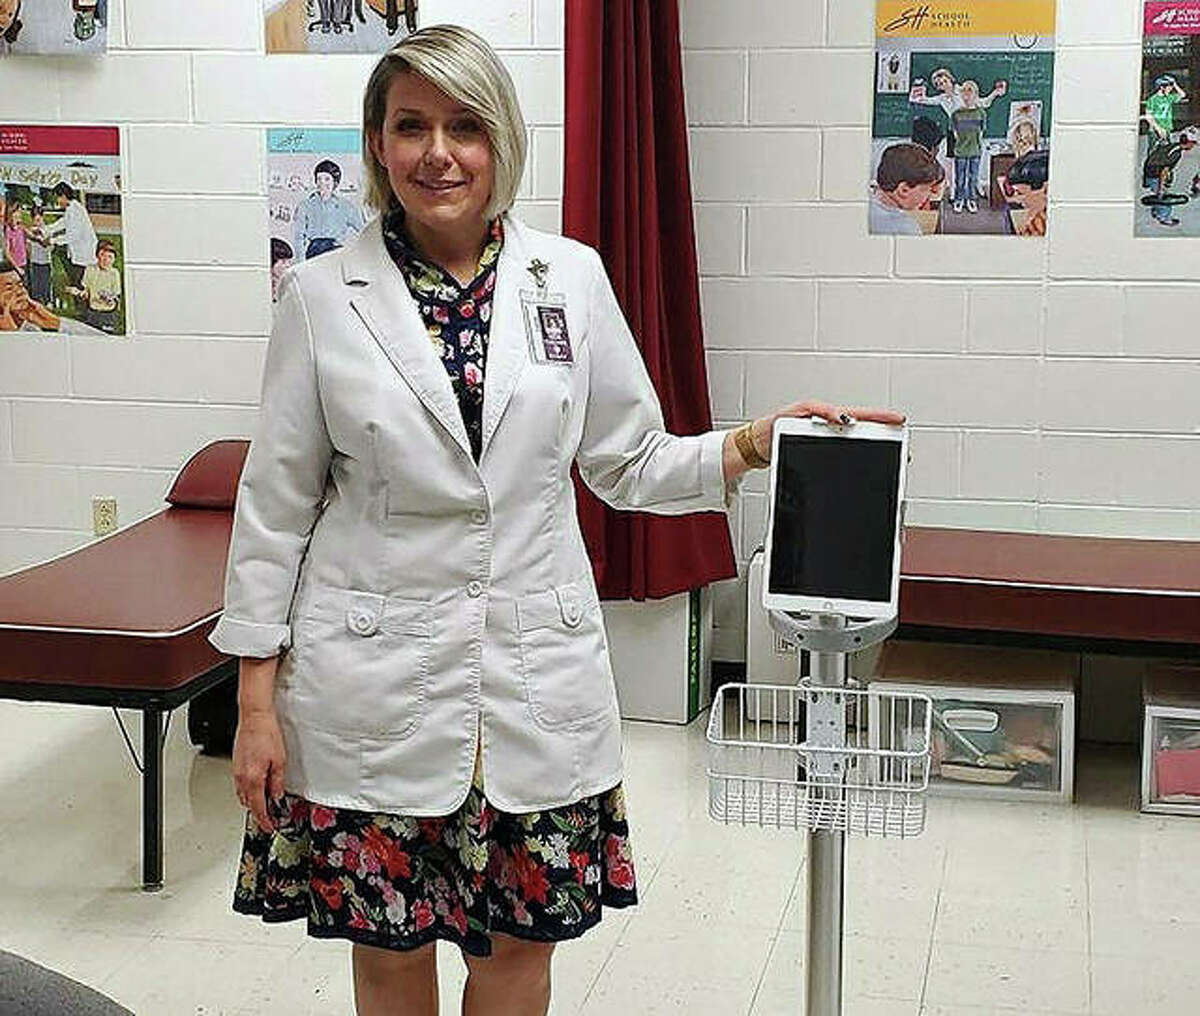 Collinsville Middle School Nurse, Debra Welch, poses with the tablet computer that Hazel Health provided her to use for student telehealth consultations.